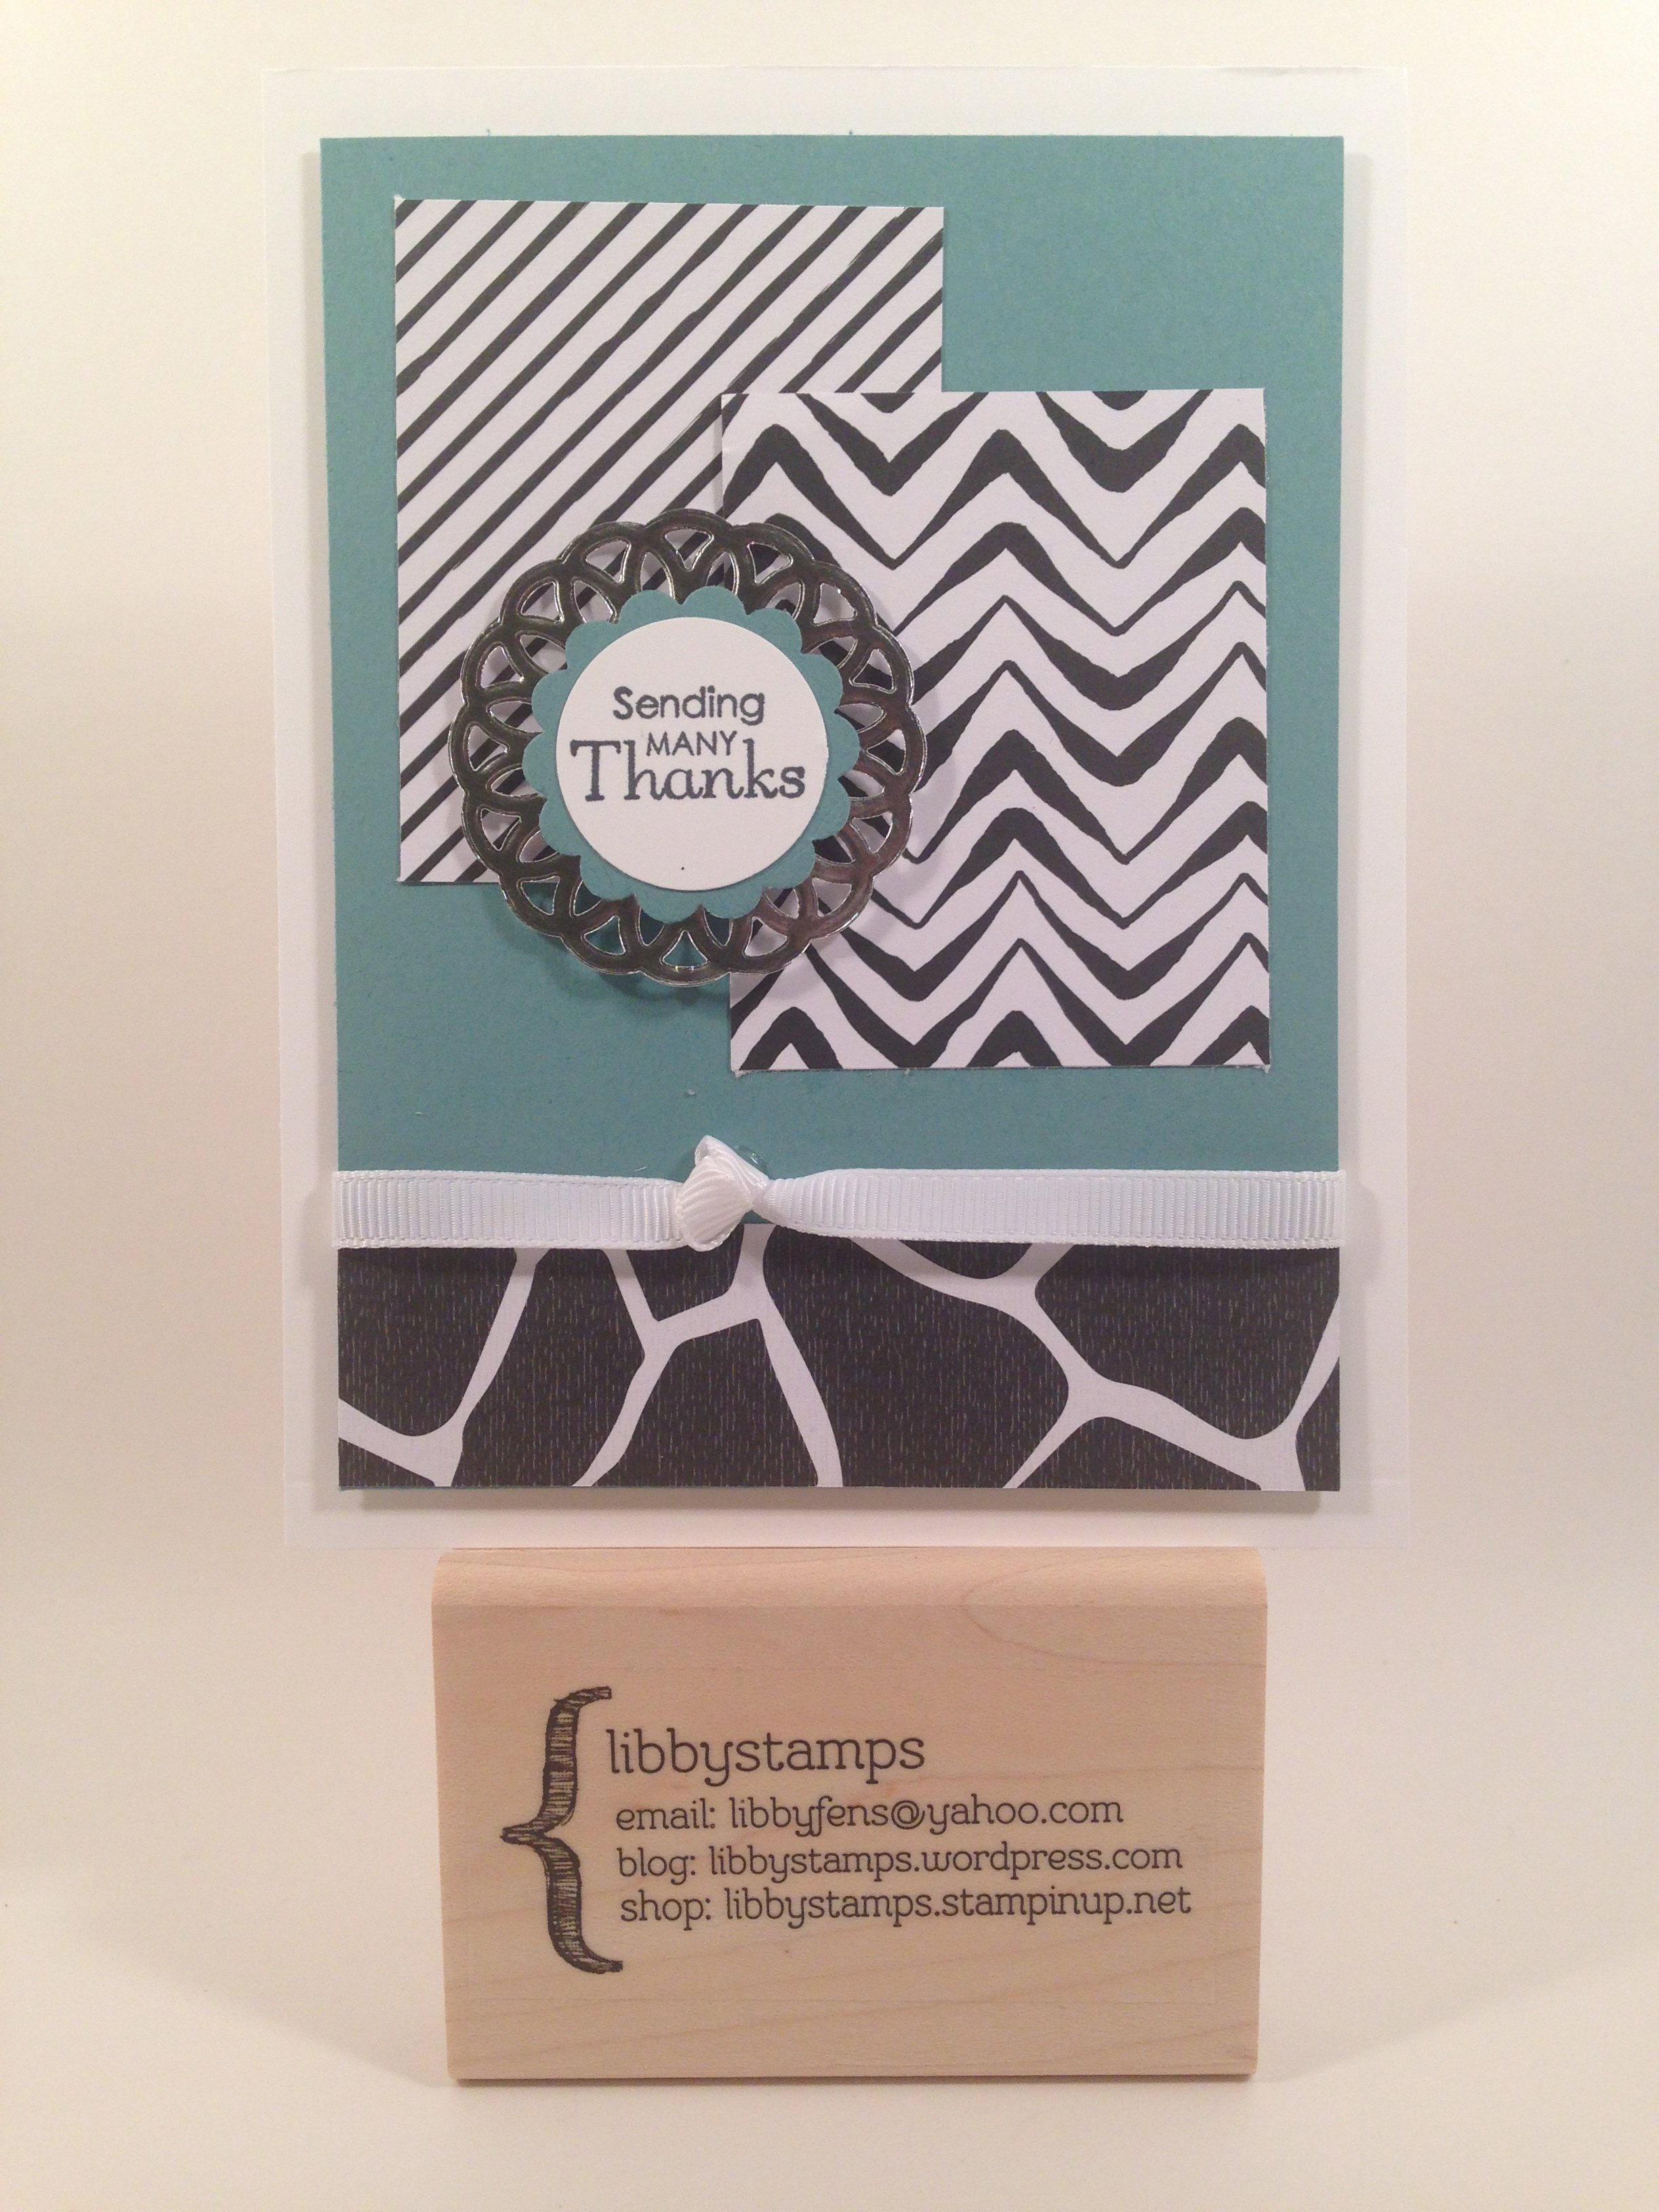 libbystamps, Stampin' Up, Petite Pairs Stamp Set, Go Wild DSP Stack, Metallic Foil Doilies,  Try Stampin' on Tuesday